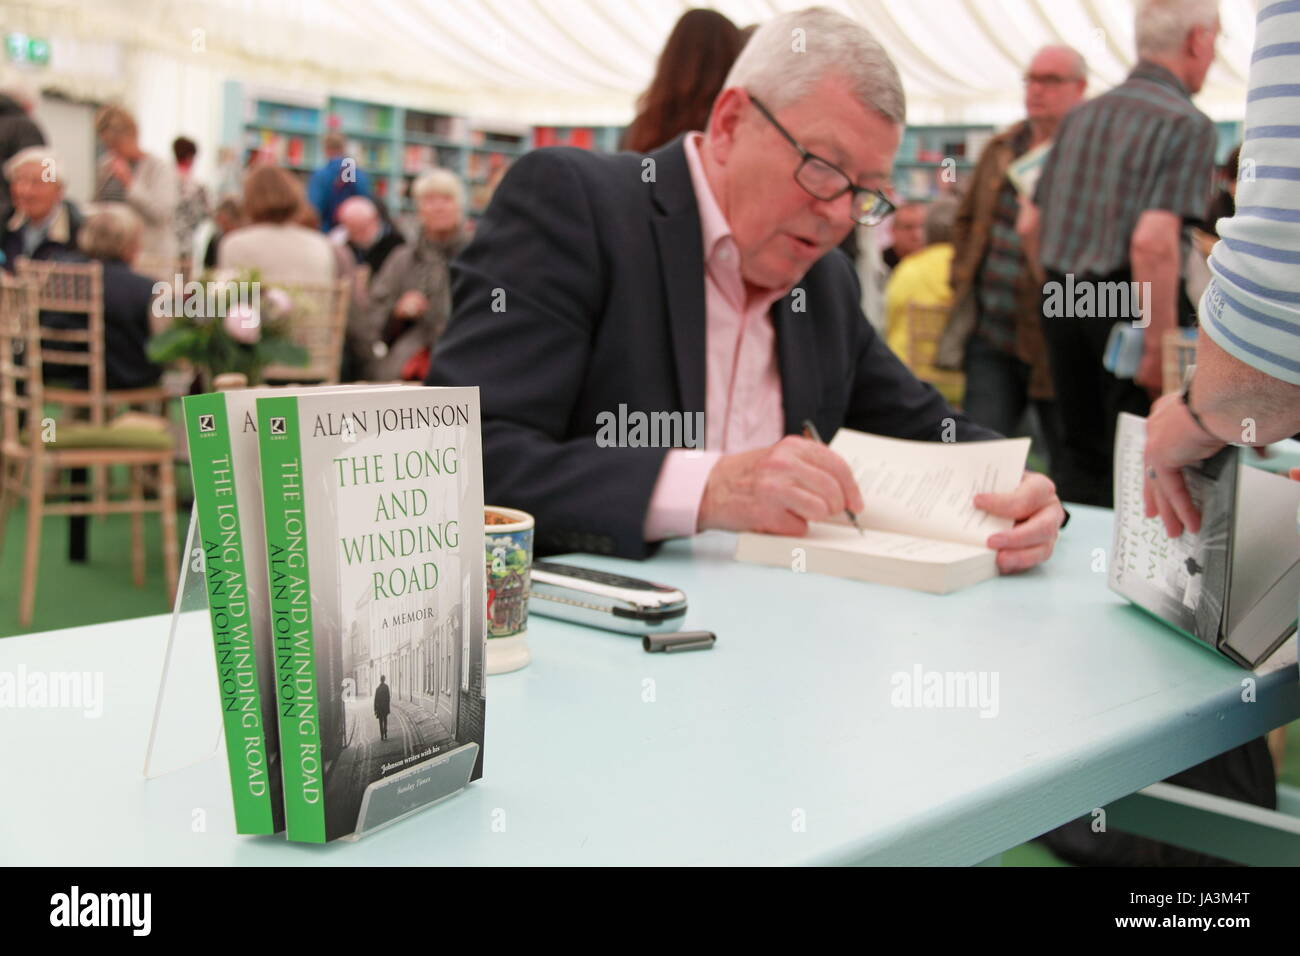 Alan Johnson book signing, Festival Bookshop, Hay Festival 2017, Hay-on-Wye, Brecknockshire, Powys, Wales, Great - Stock Image